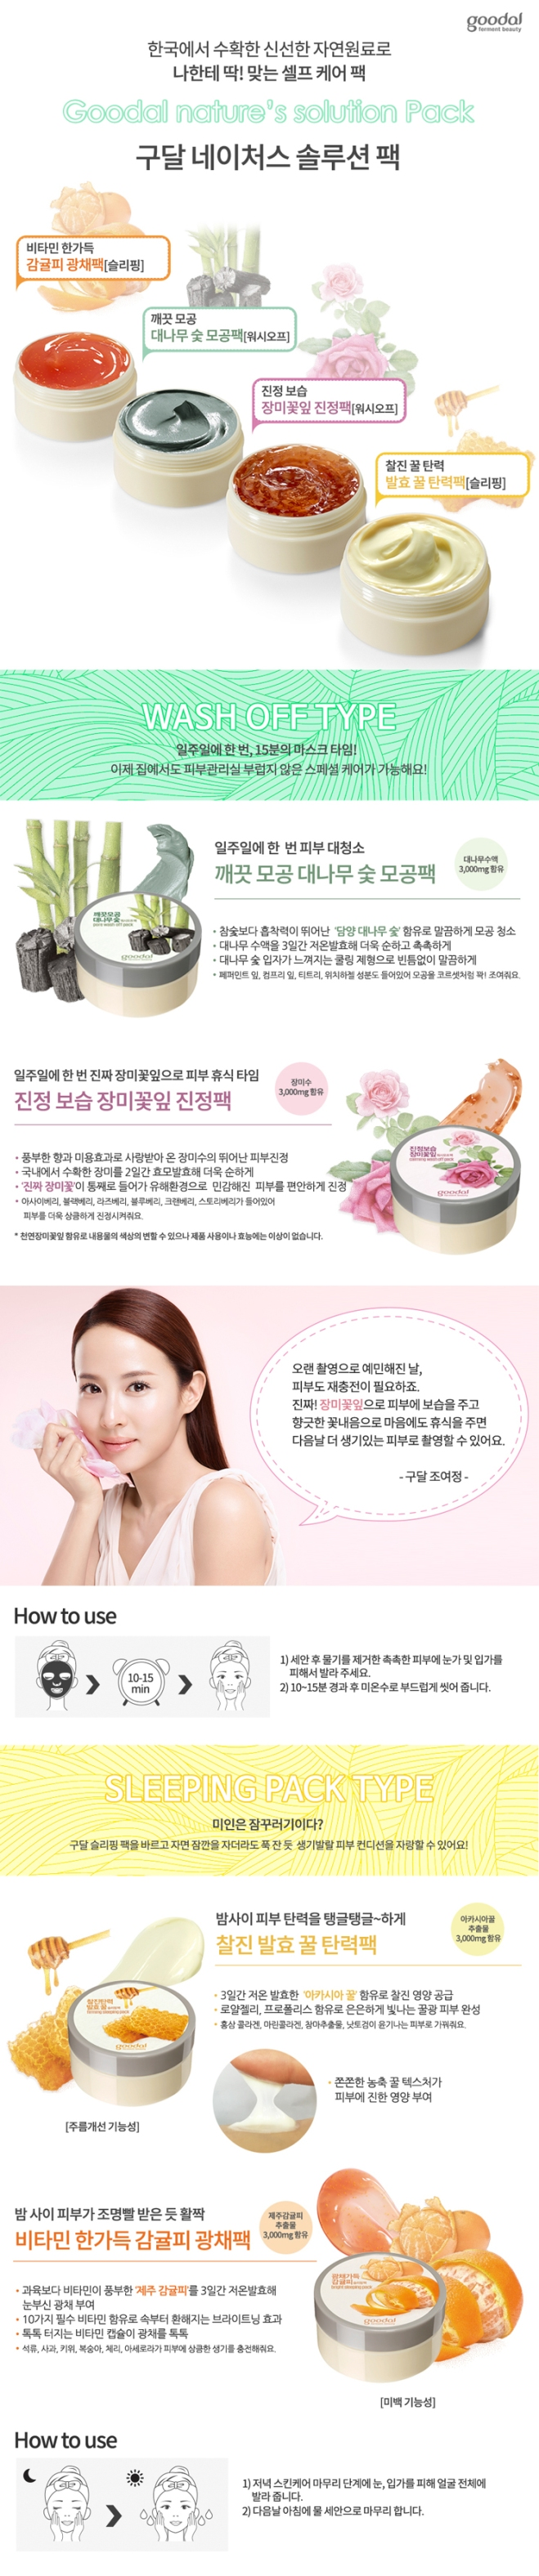 Credit: Goodal Korea website